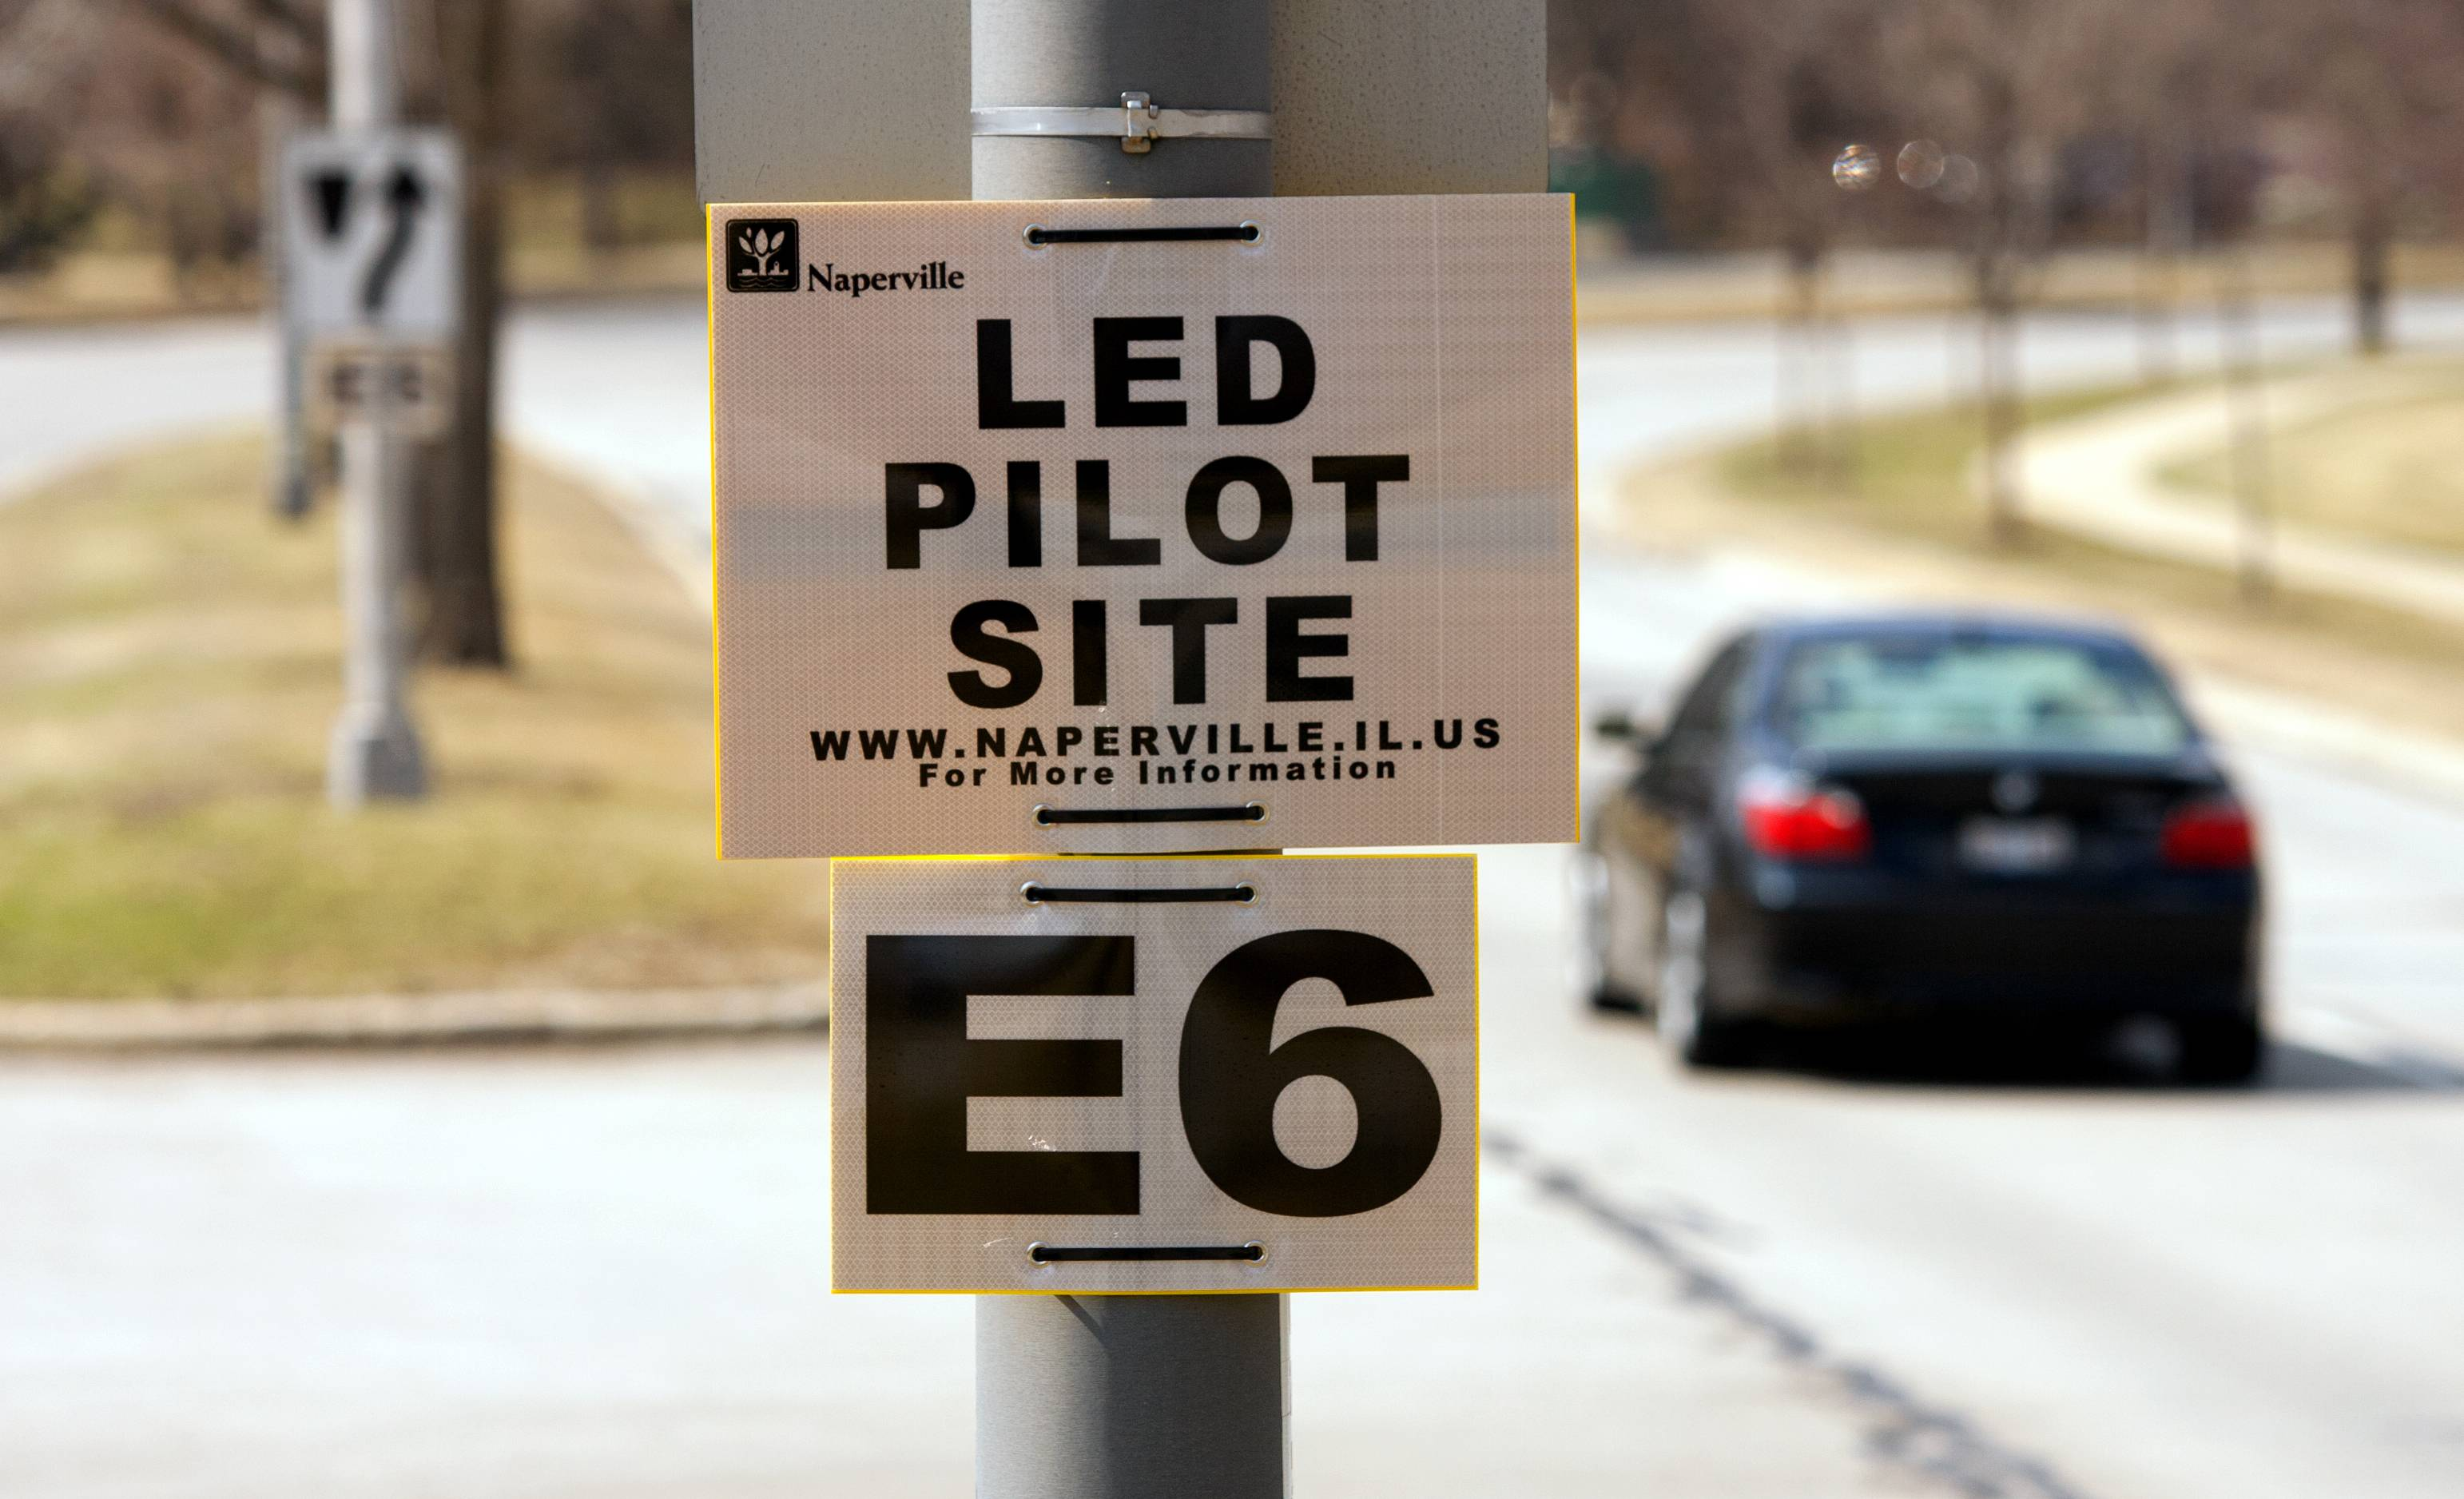 Naperville is testing varieties of LED lights from six different vendors before choosing which to install throughout the city during the next years. Serving as one test area for the new lights is this stretch of Diehl Road west of Washington Street.